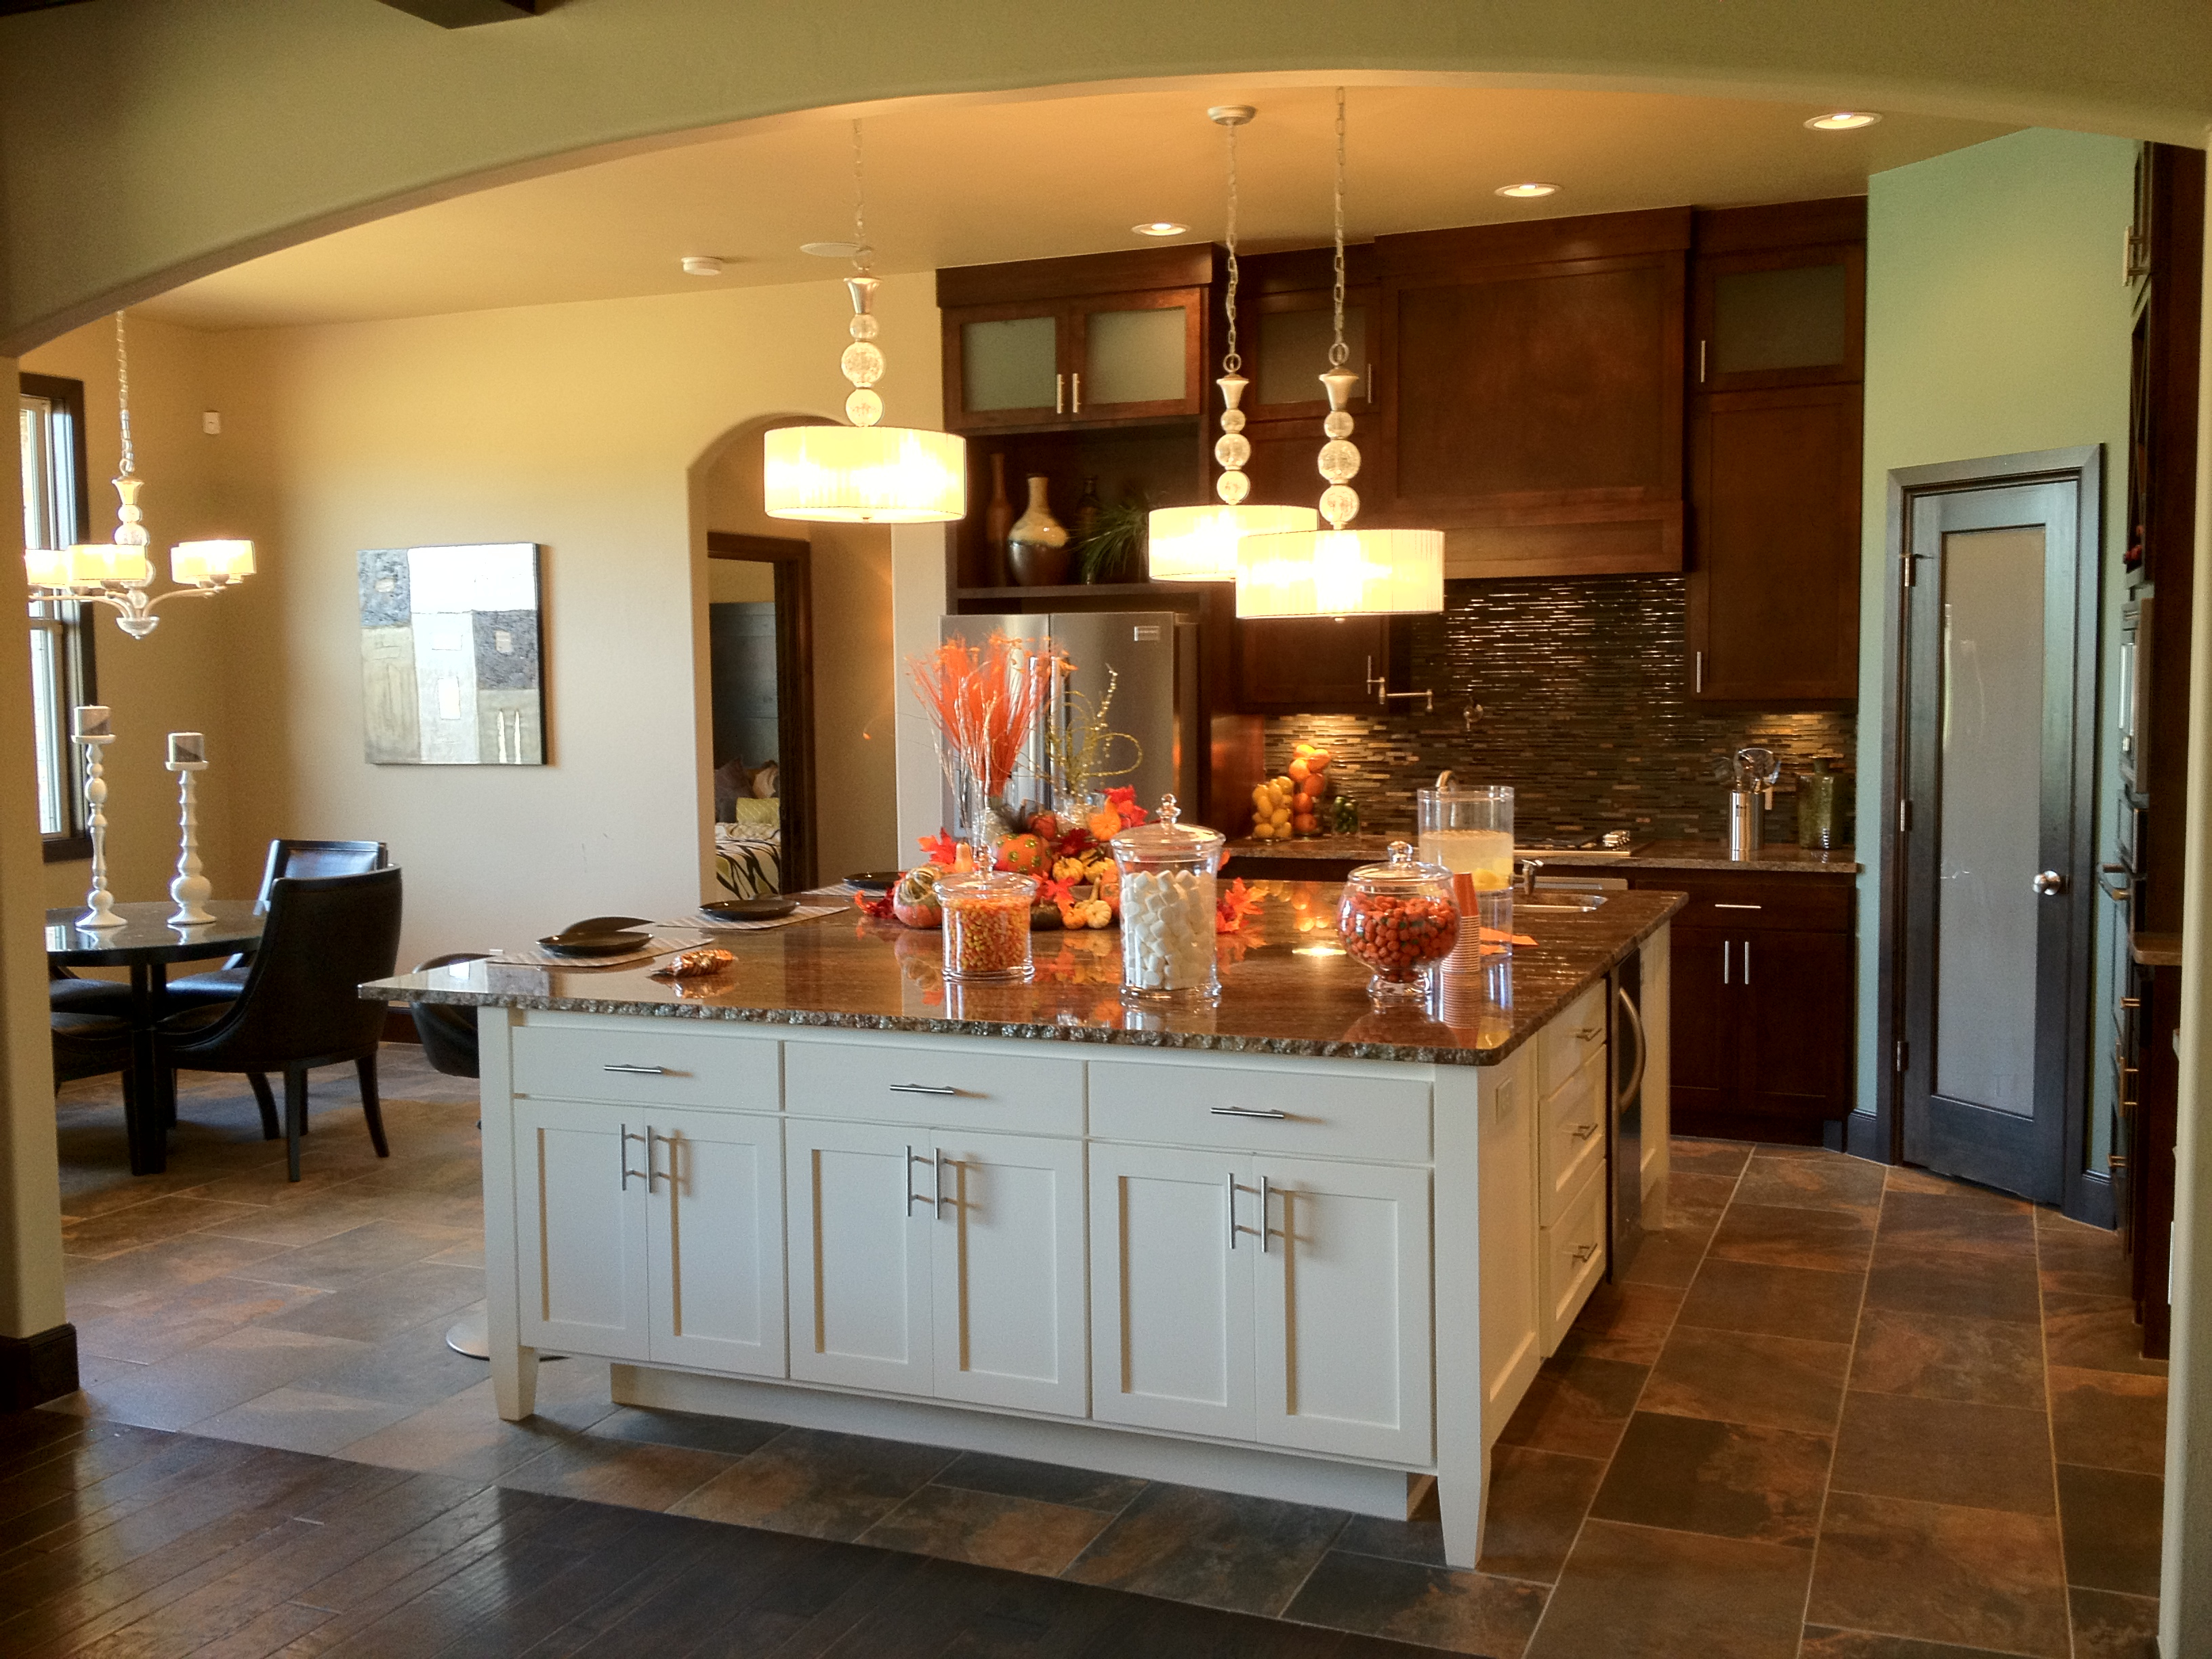 Neal McGee Homes in Edmond OK